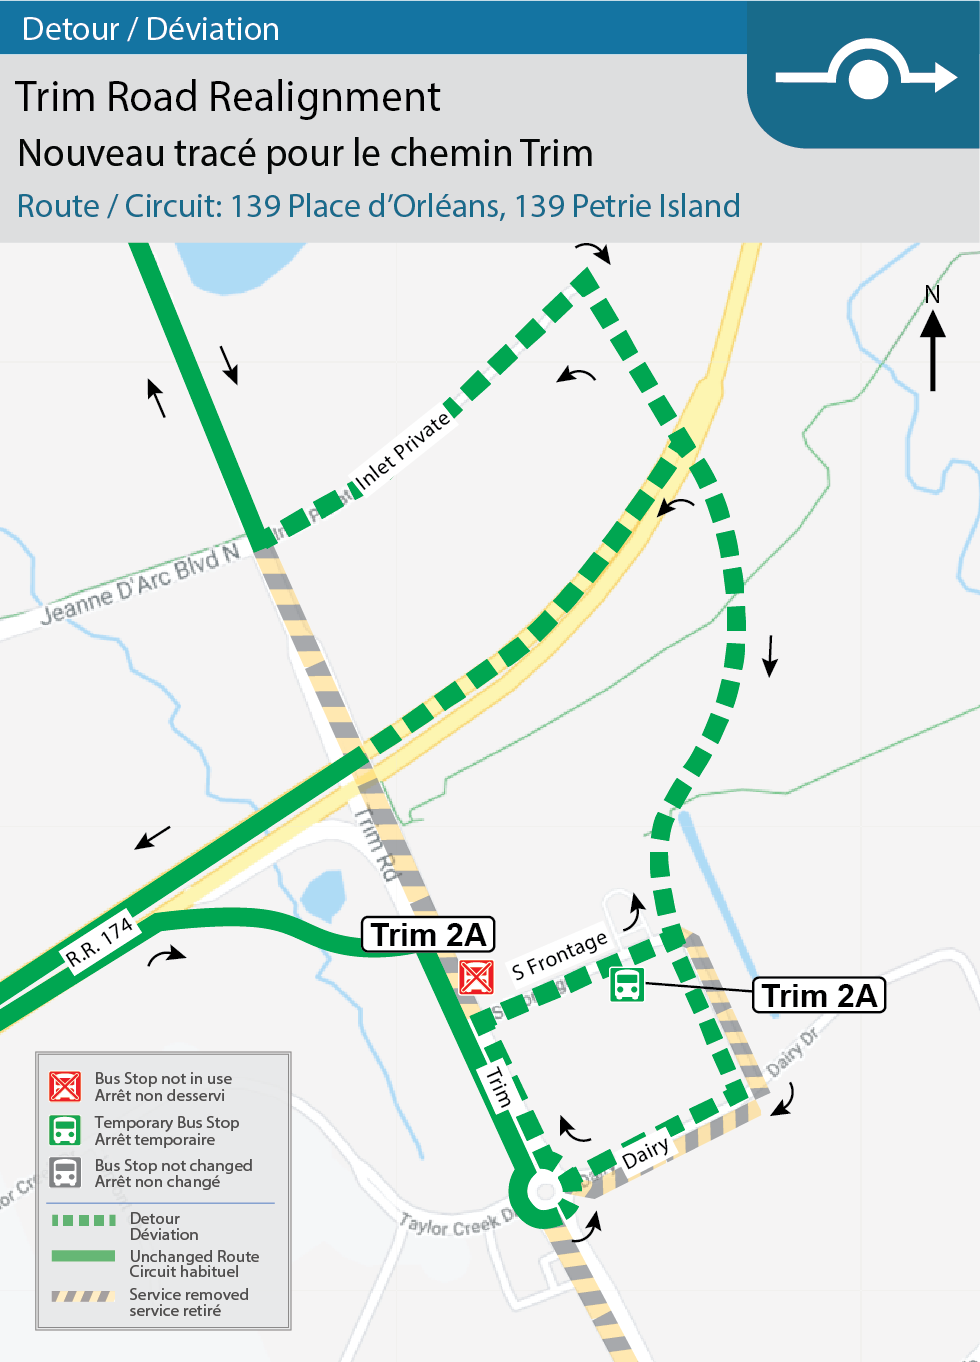 Map for Routes 139 Place d'Orleans and139 Petrie Island, Trim Road Realignment and Trim Station Adjustments detour